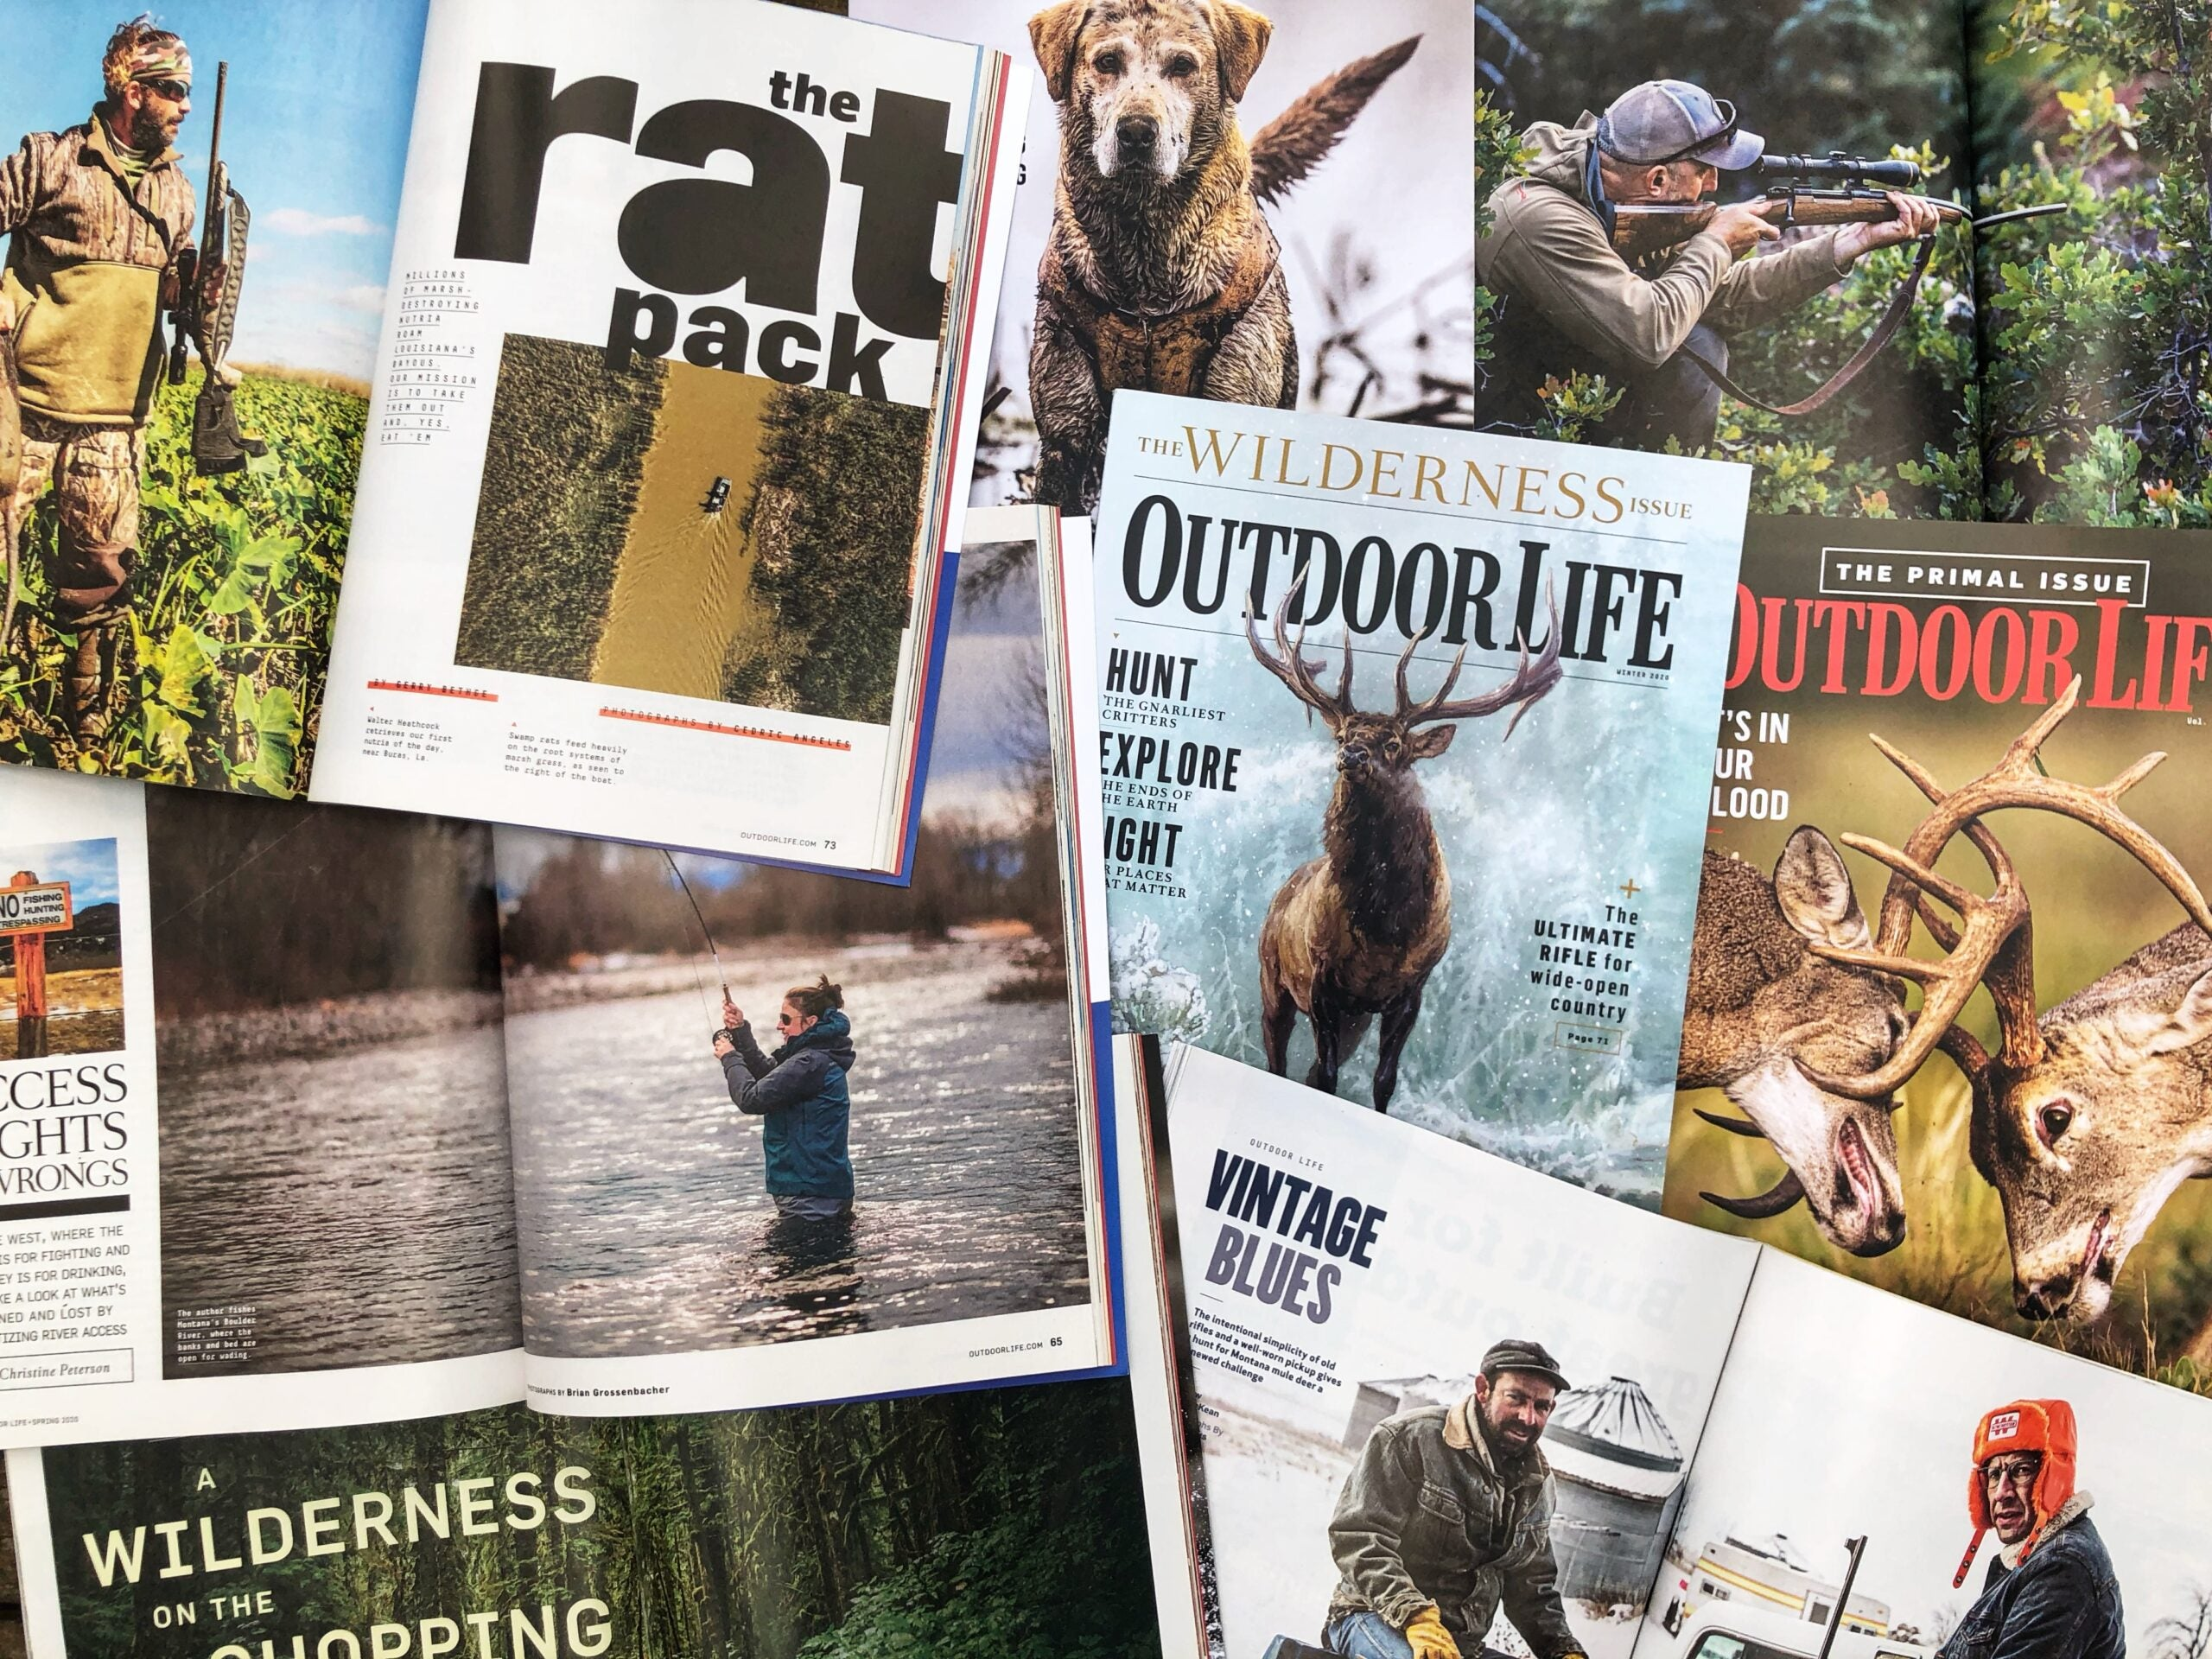 An assortment of Outdoor Life magazine covers and story pages about deer hunting, fishing, and more from 2020.